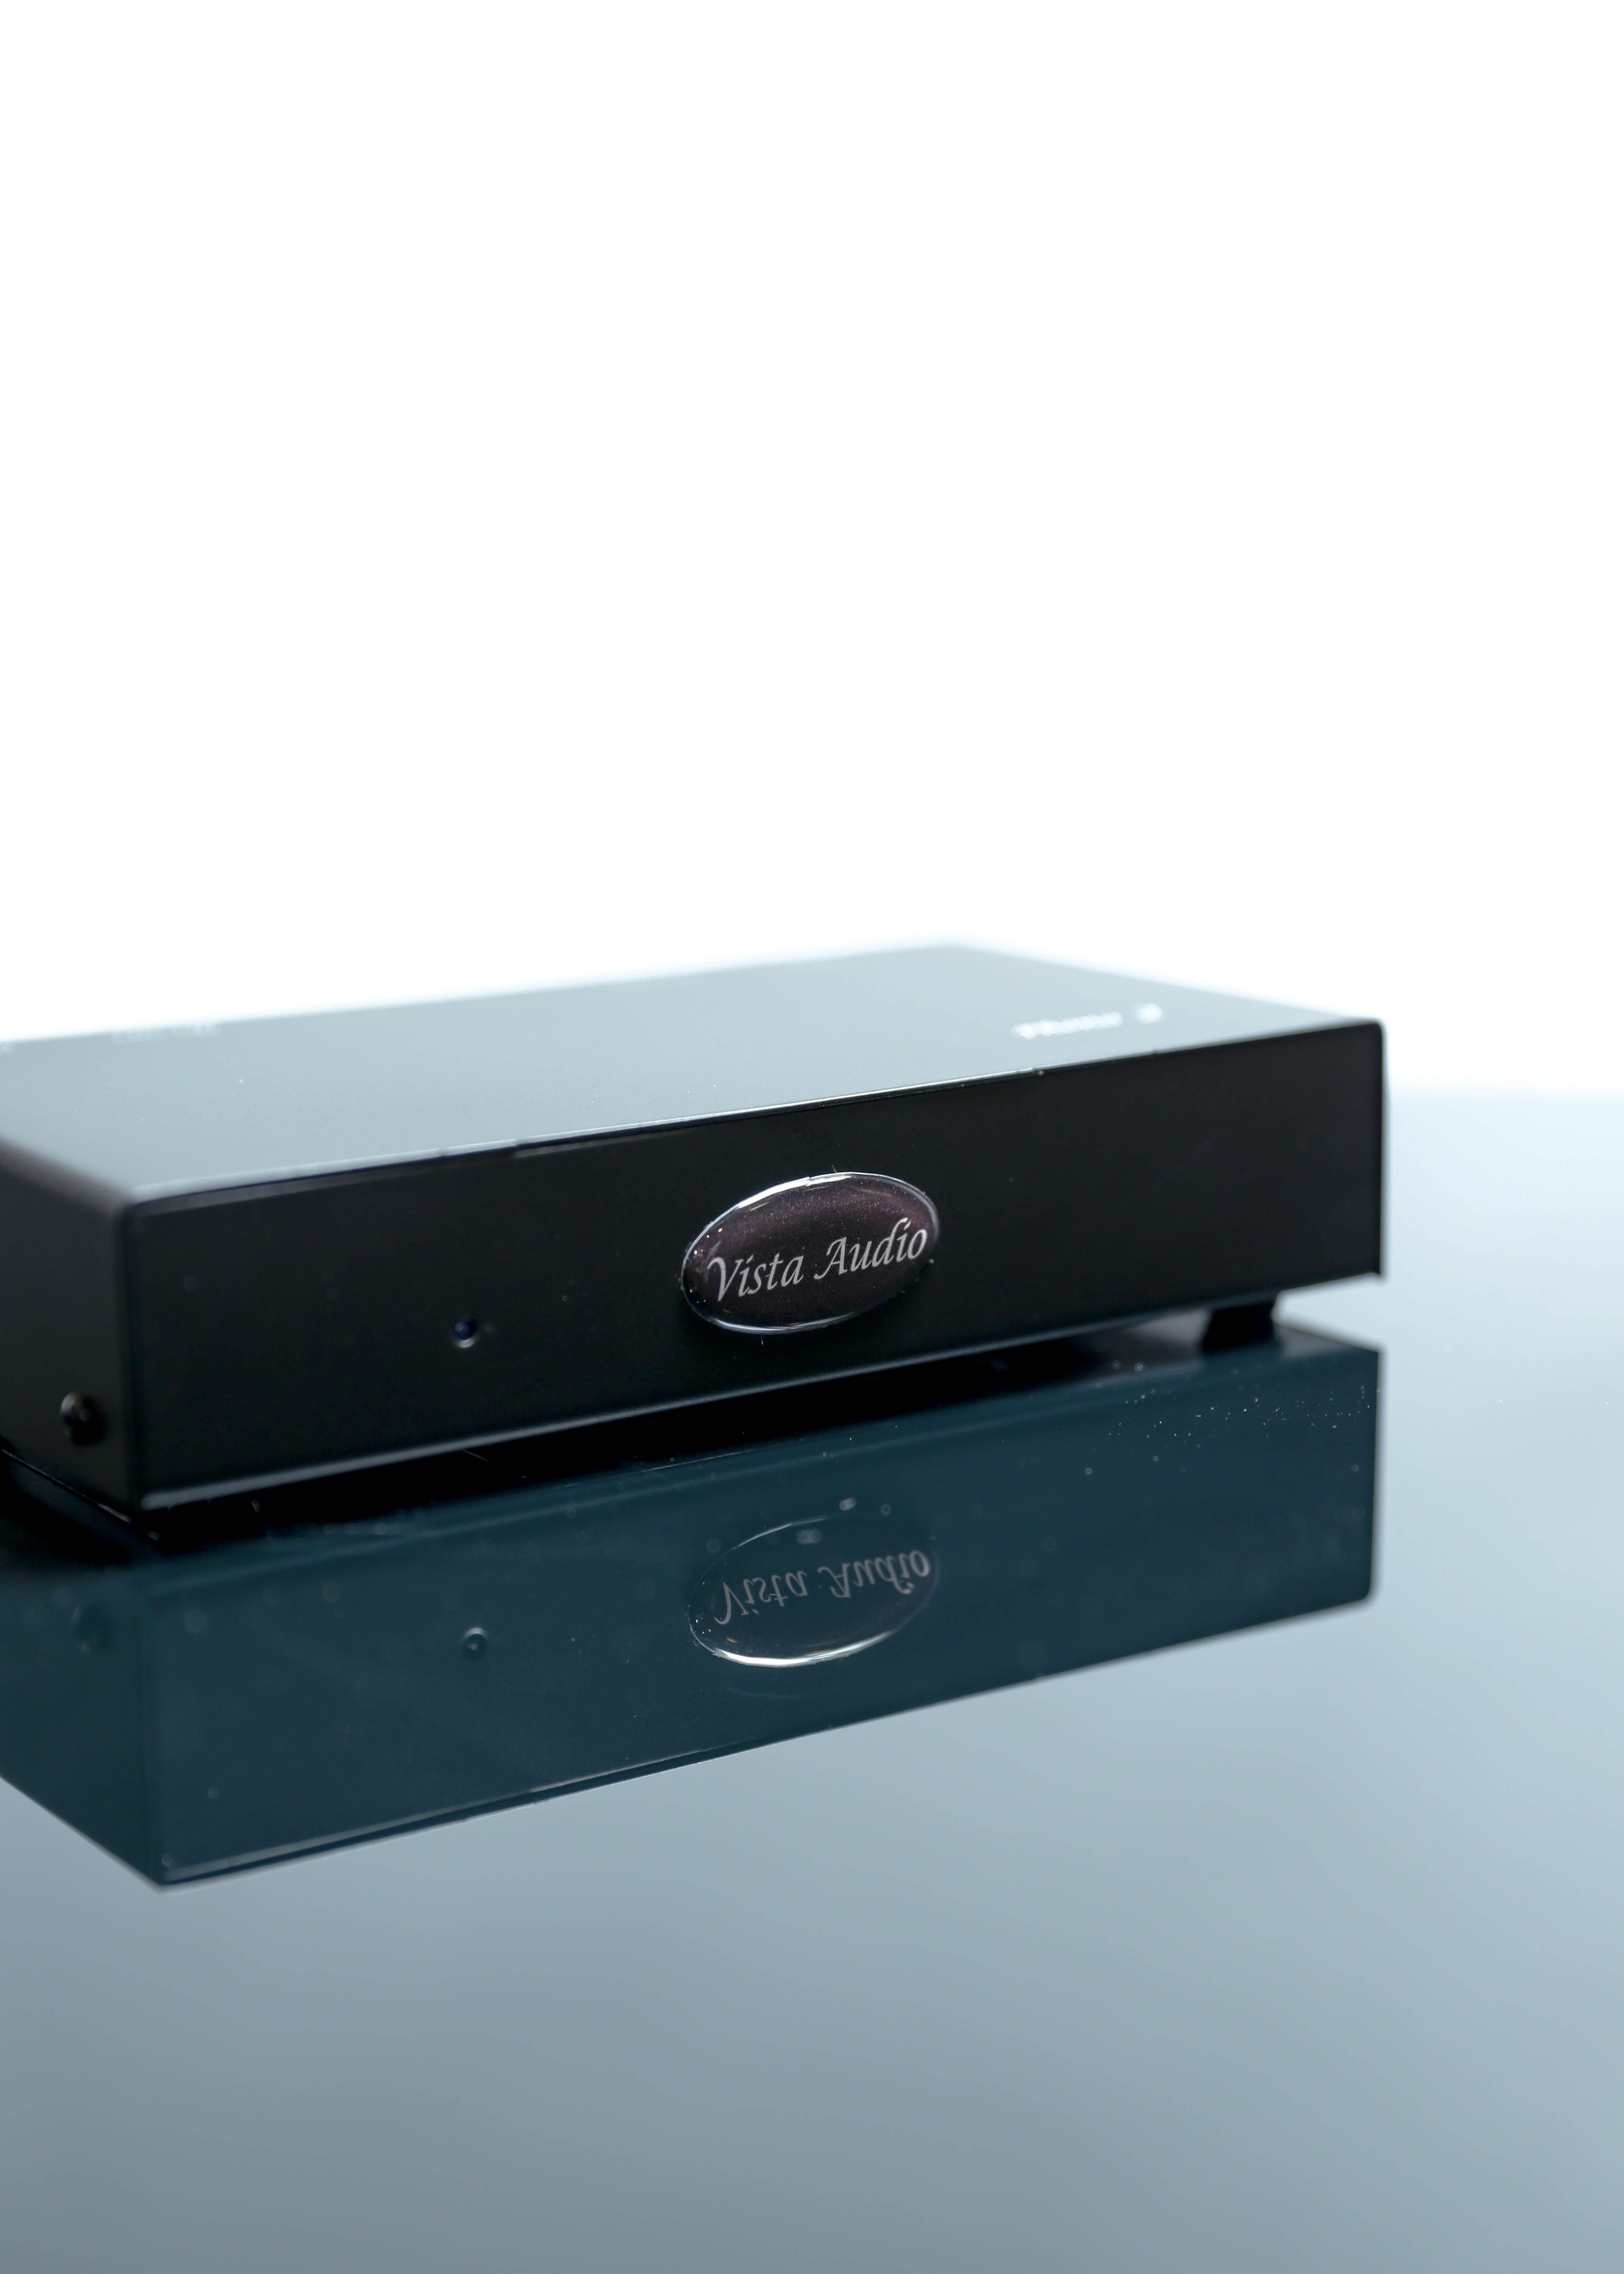 phono pre ampli Vista Audio Phono-2 chuan